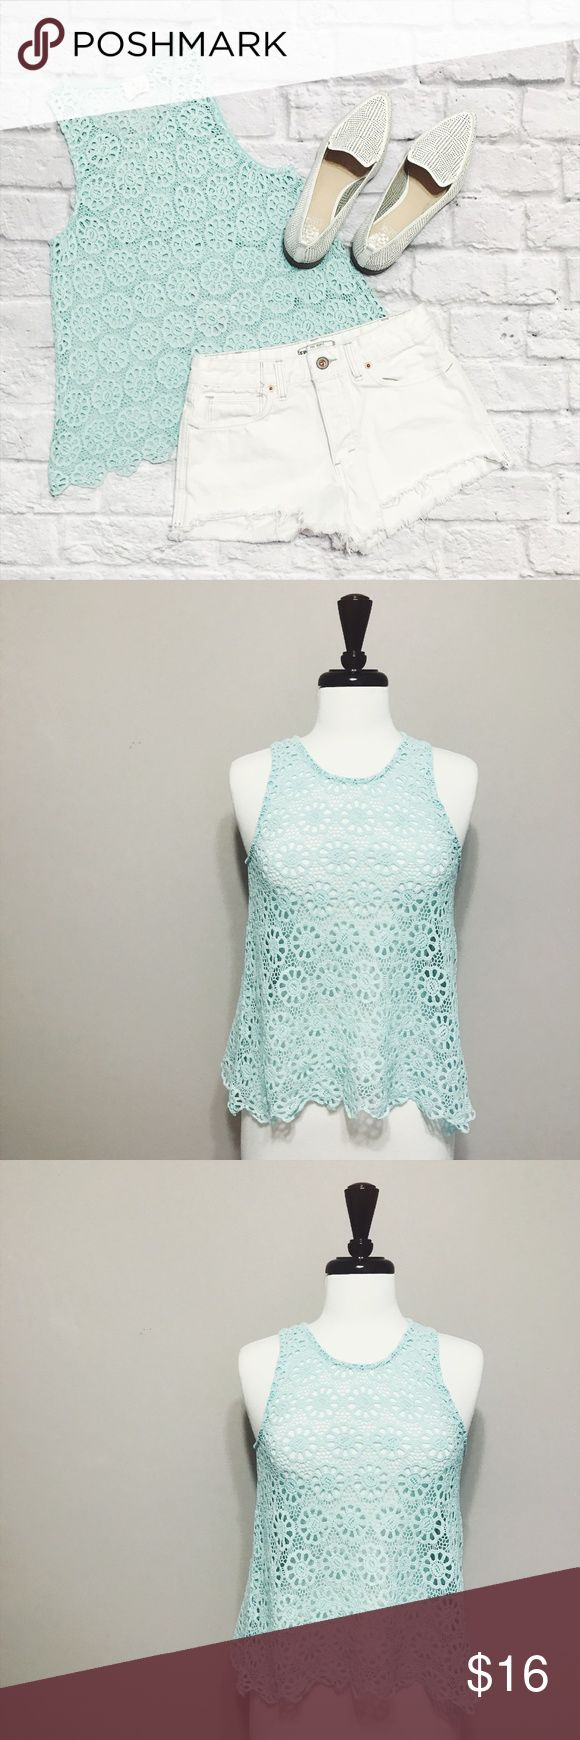 Urban Outfitters Pins and Needles Crochet Tank Top Urban Outfitters Pins and Needles Crochet Tank Top condition: GUC (good used condition) color: light blue fit: runs small see measurements other: N/A Urban Outfitters Tops Tank Tops